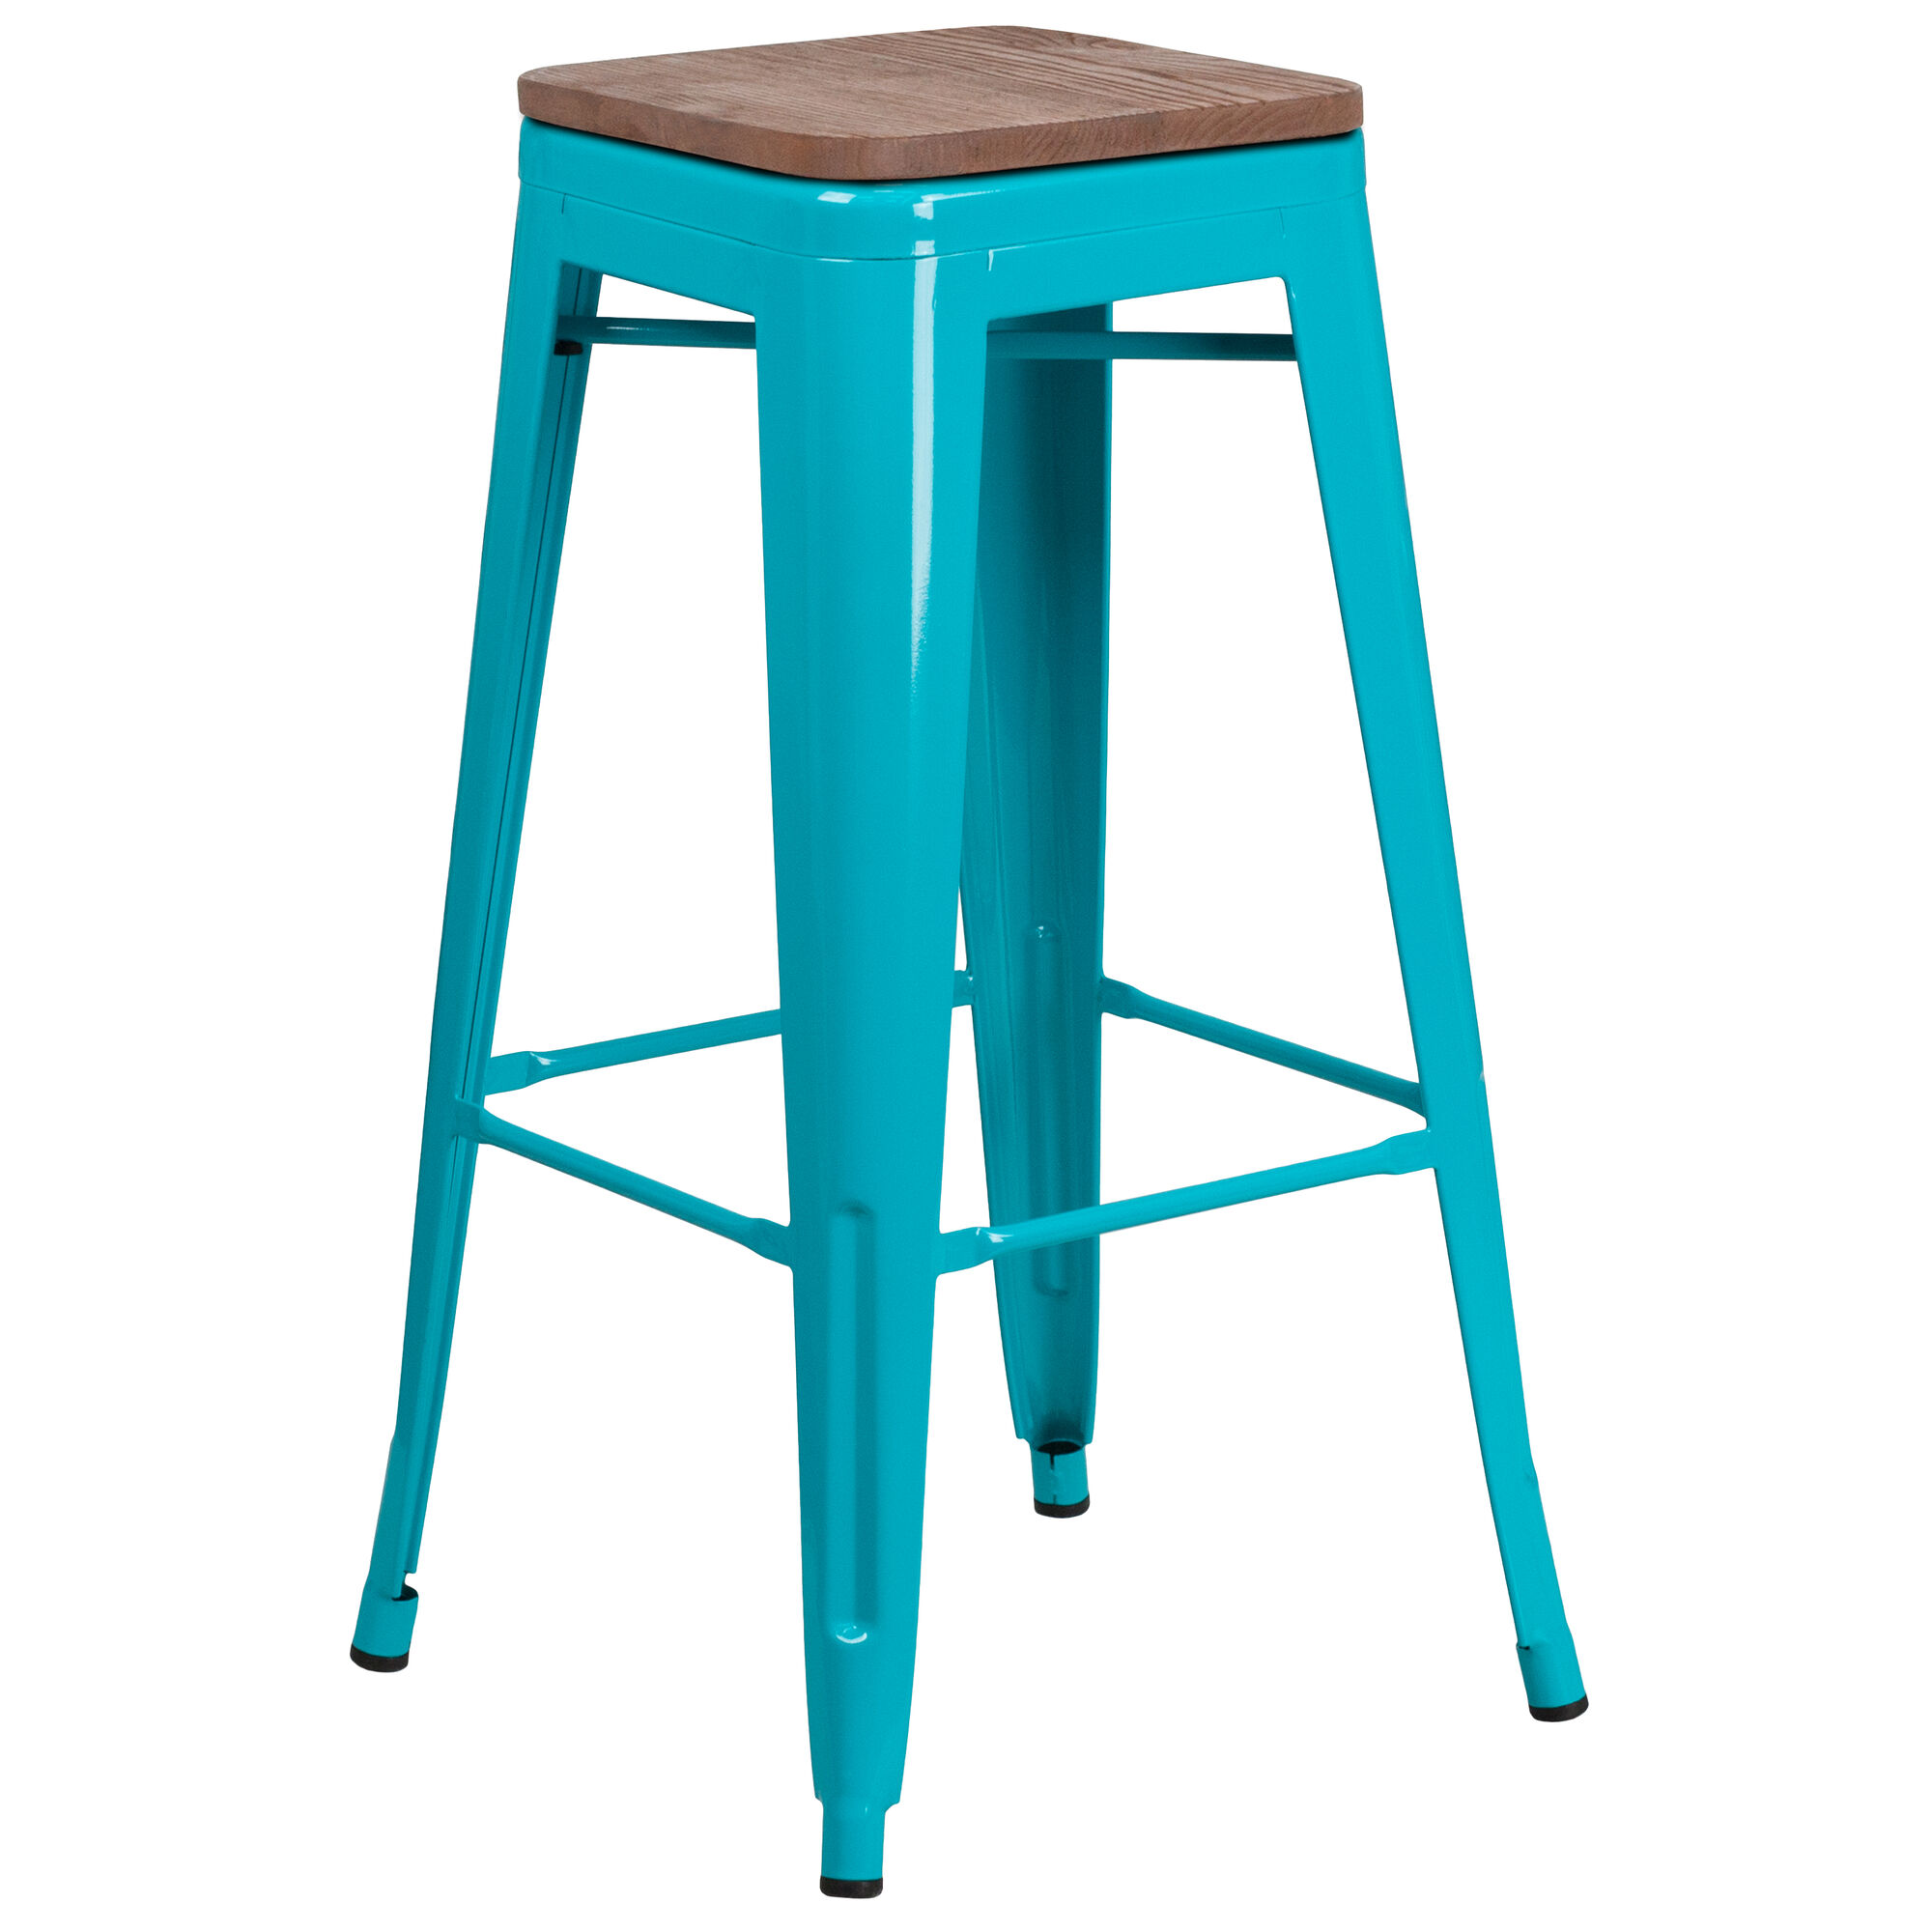 Incredible 30 High Backless Crystal Teal Blue Barstool With Square Wood Seat Onthecornerstone Fun Painted Chair Ideas Images Onthecornerstoneorg